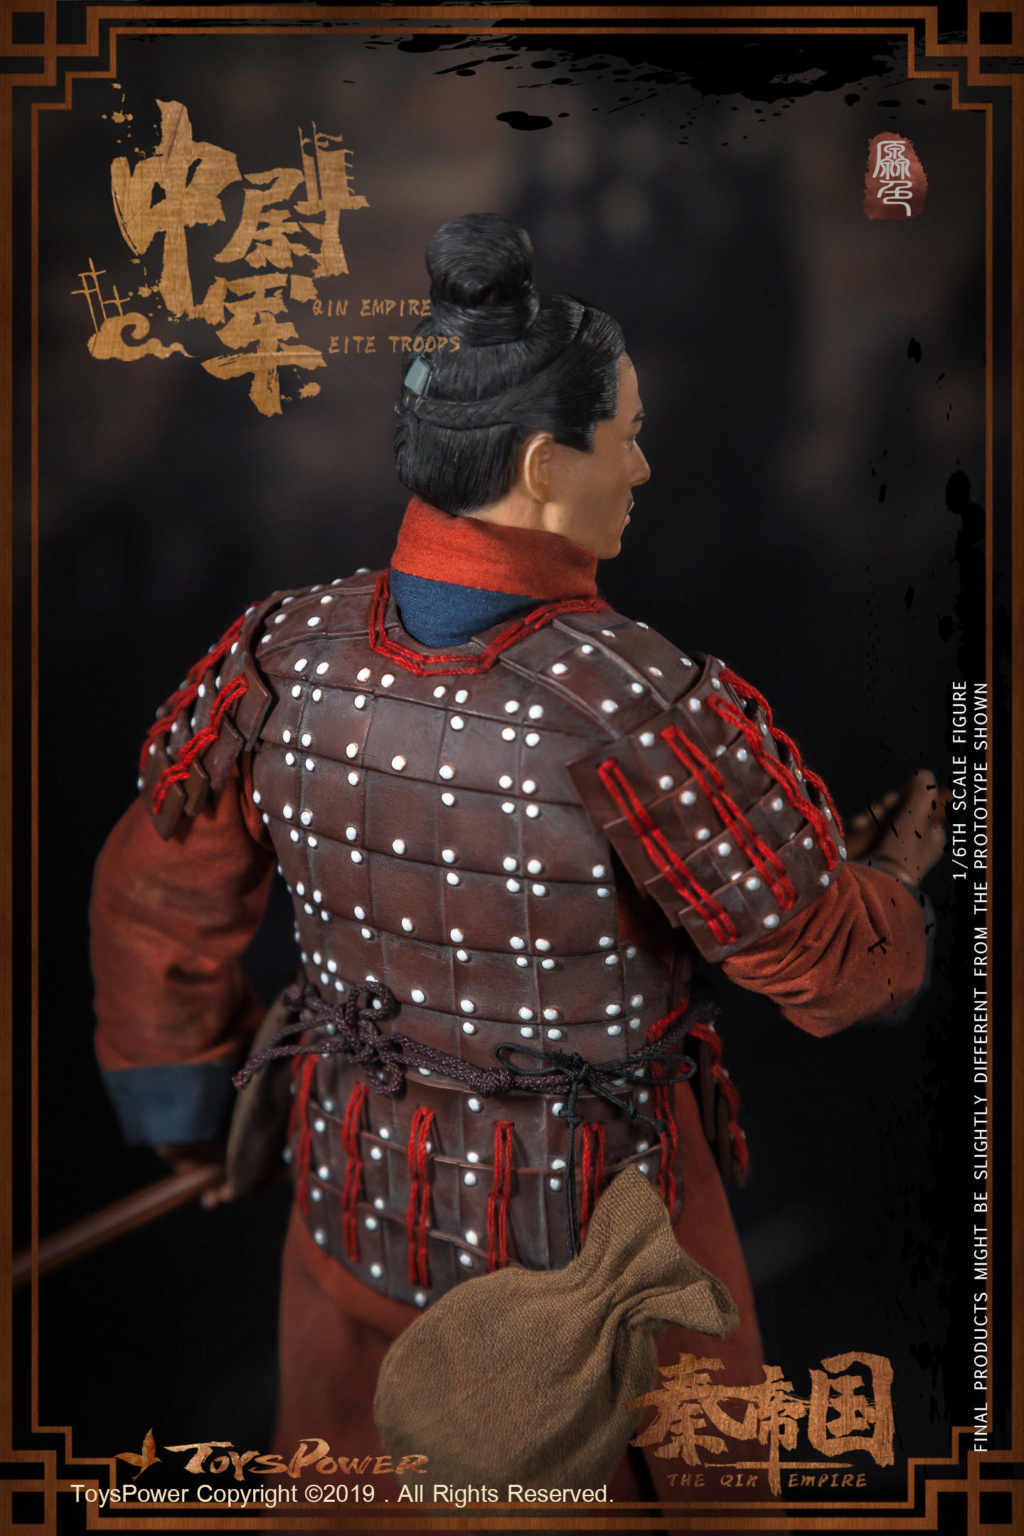 Army - NEW PRODUCT: Toyspower: 1/6 Qin Empire Lieutenant Army (Terracotta Warriors) movable doll CT012# (update armor piece drawing) 4236